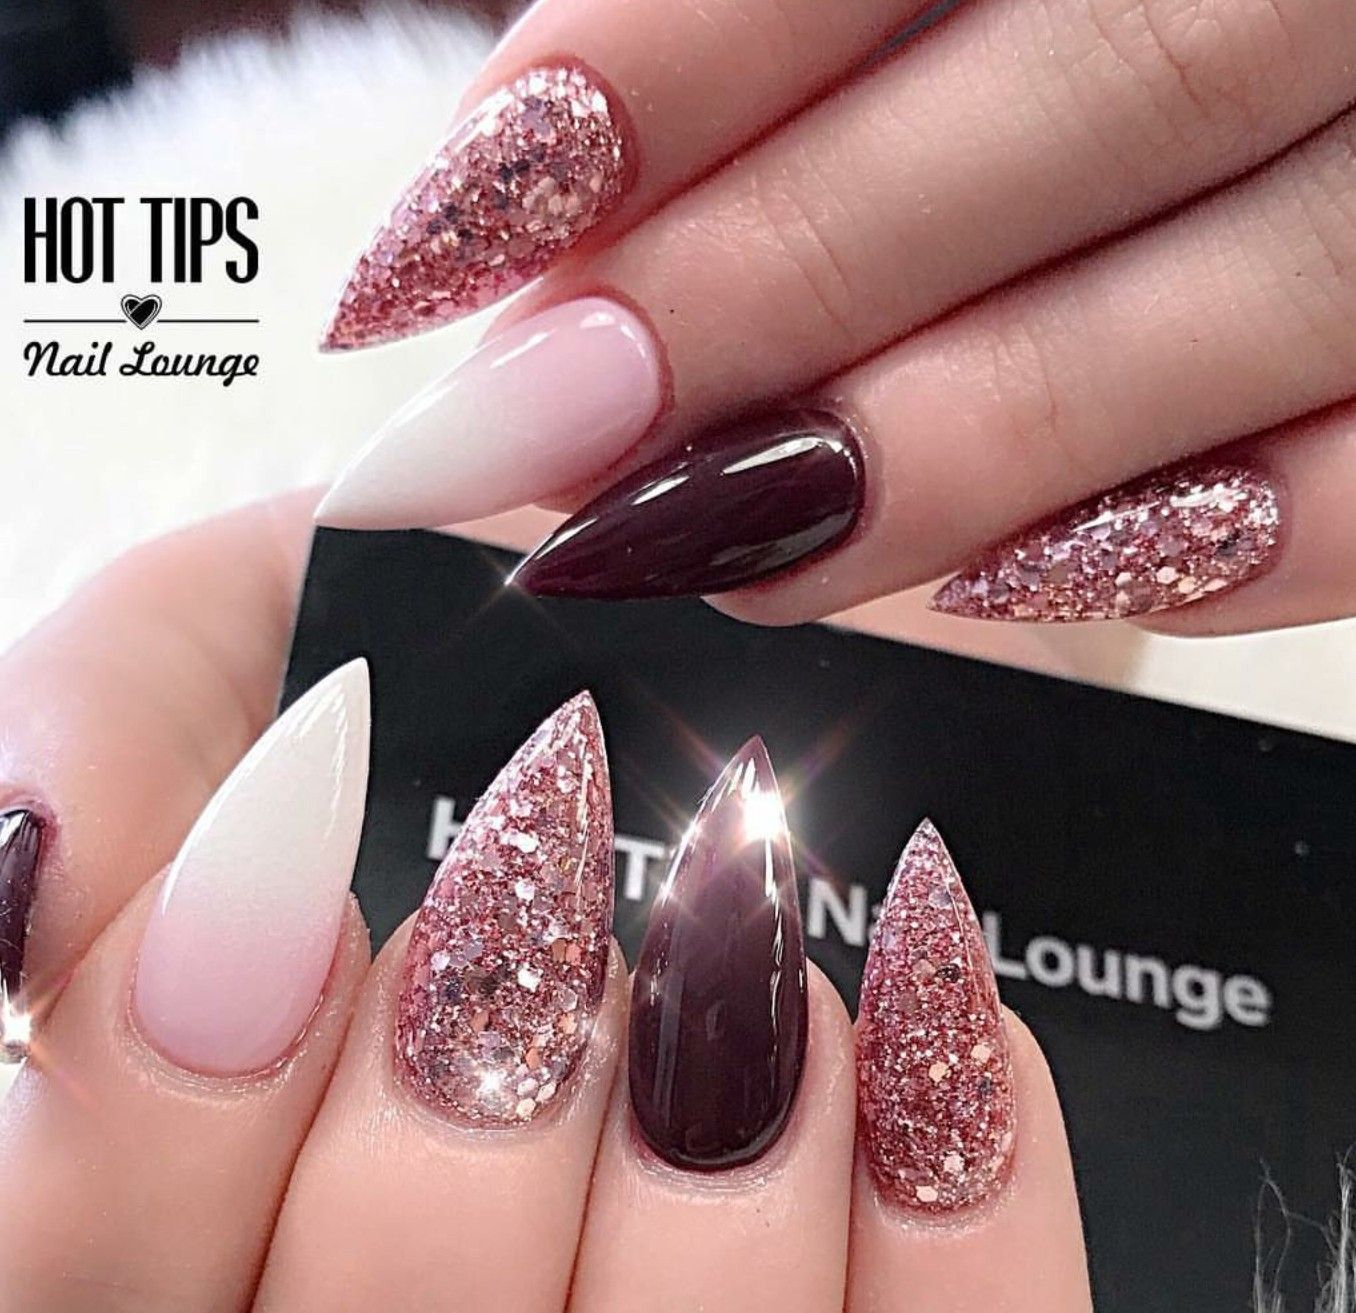 Stiletto Nails Fall Nails Burgundy Nails Ombre Nails Glitter Nails Acrylic Nails Ombre Nails Burgundy Nails Fall Acrylic Nails